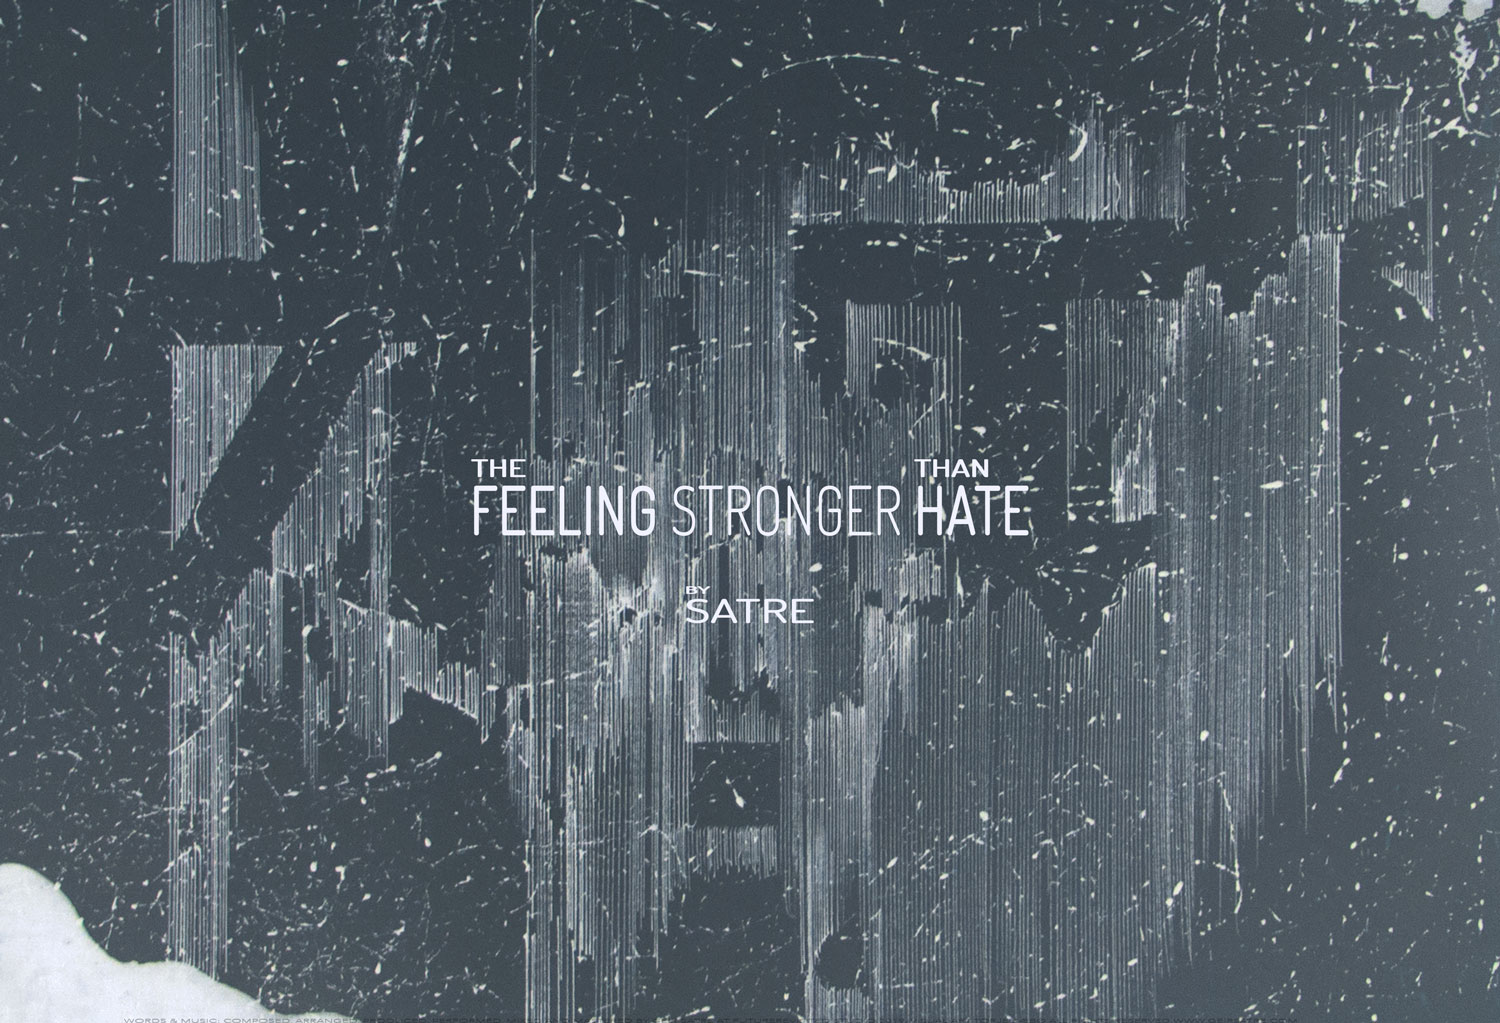 The-Feeling-Stronger-Than-Hate-front-1500-geir-satre.jpg